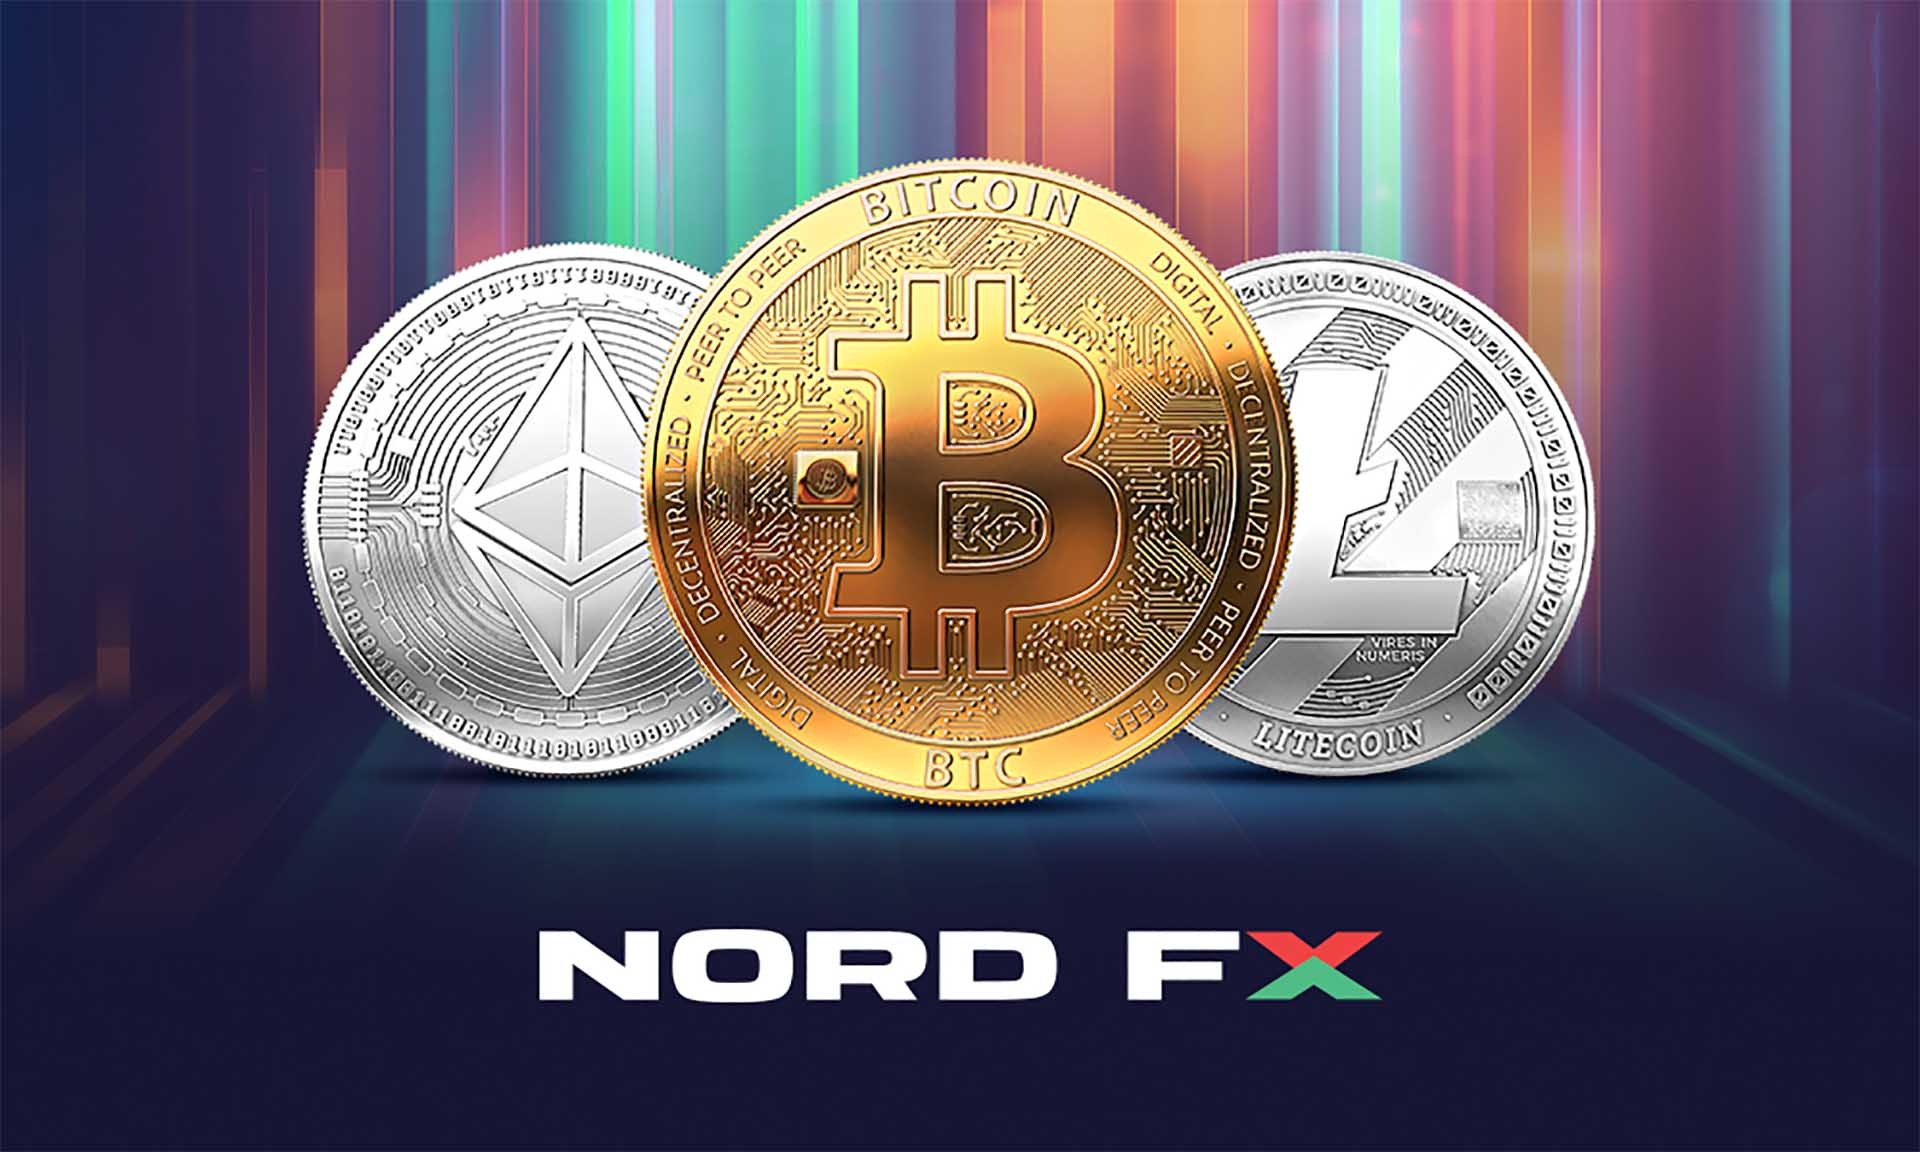 Broker NordFX Offers Unique Terms for Transactions with Cryptocurrencies